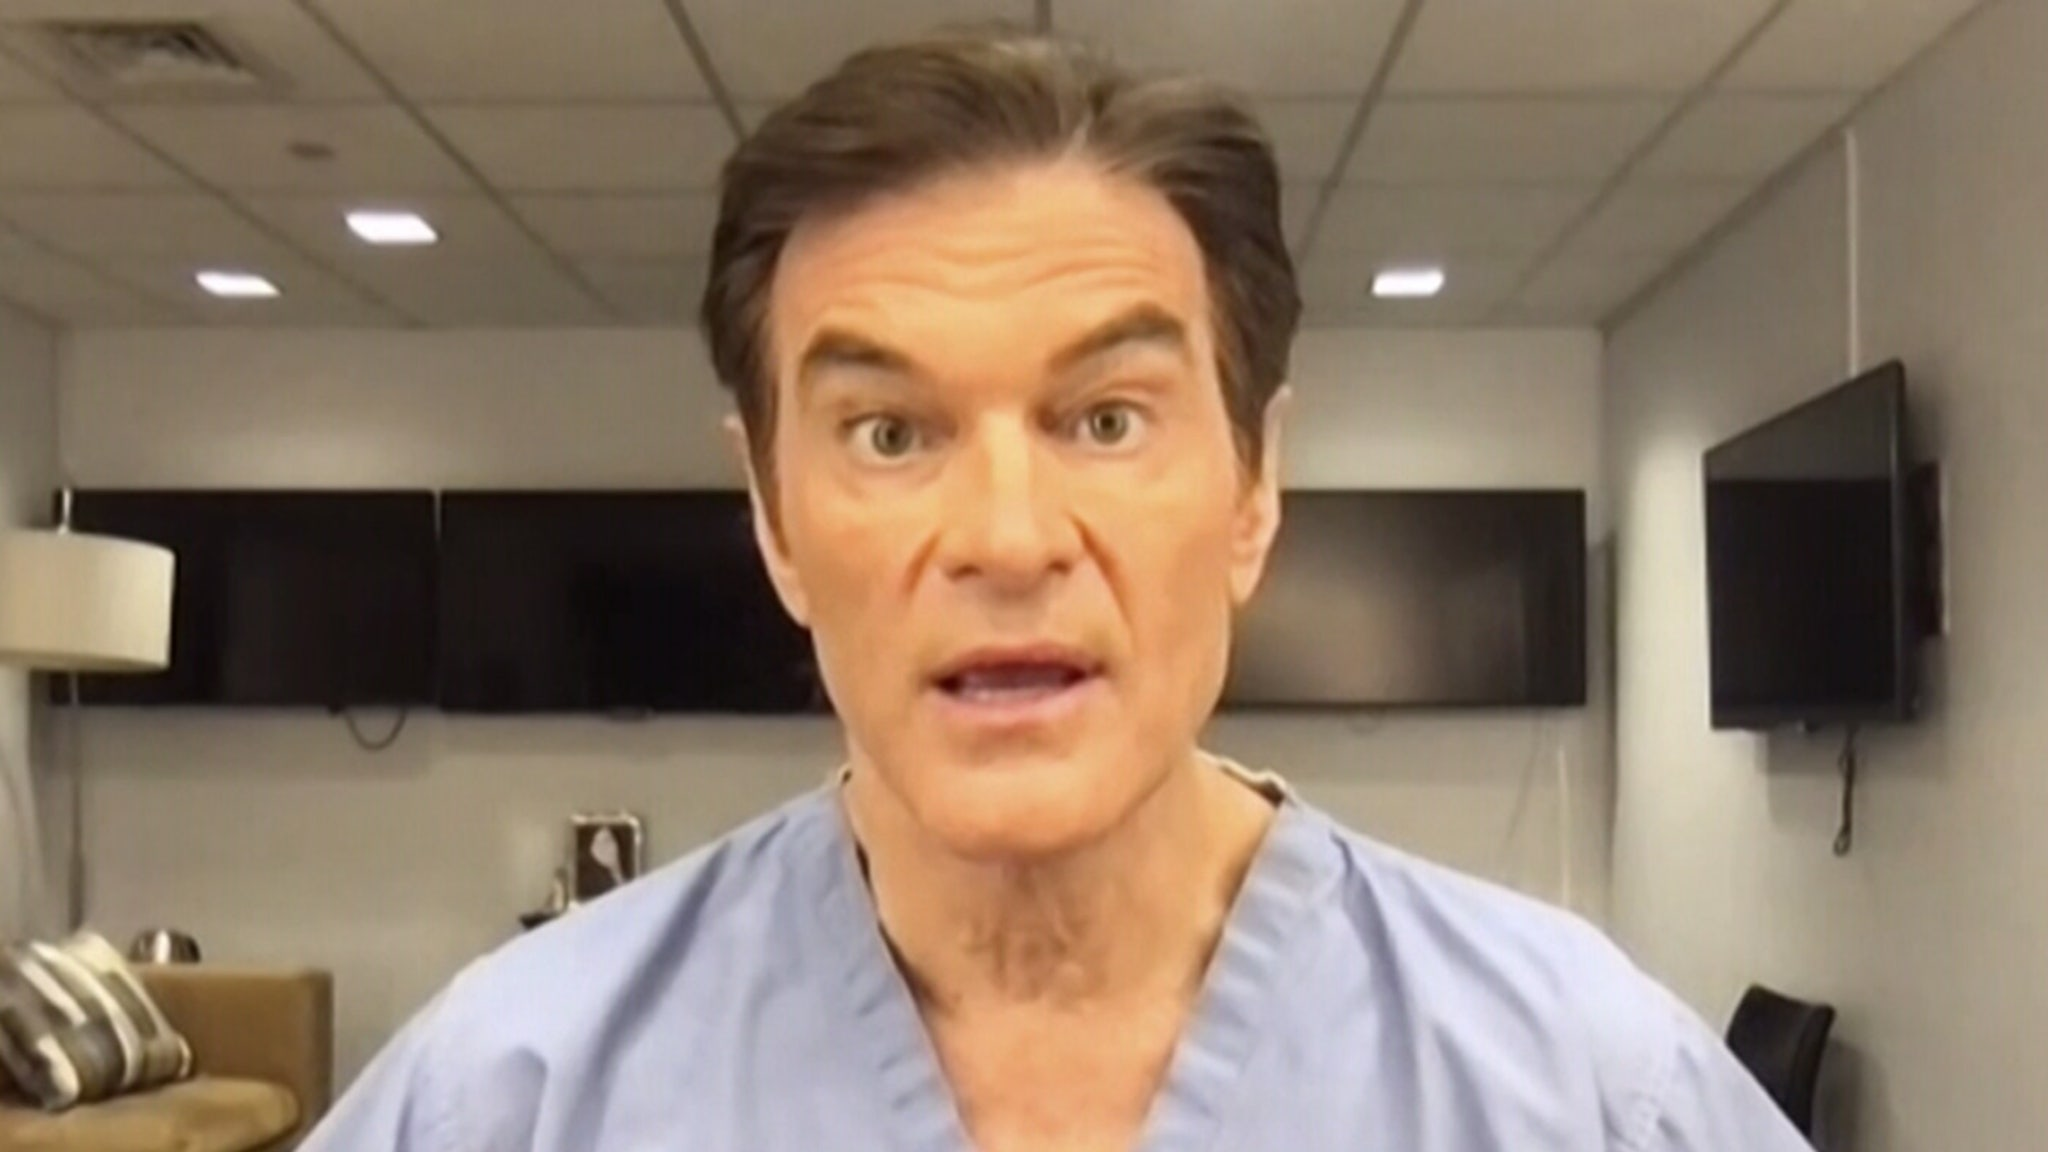 Dr. Oz Saves Man's Life at Newark Airport After He Collapsed, Flatlined - TMZ